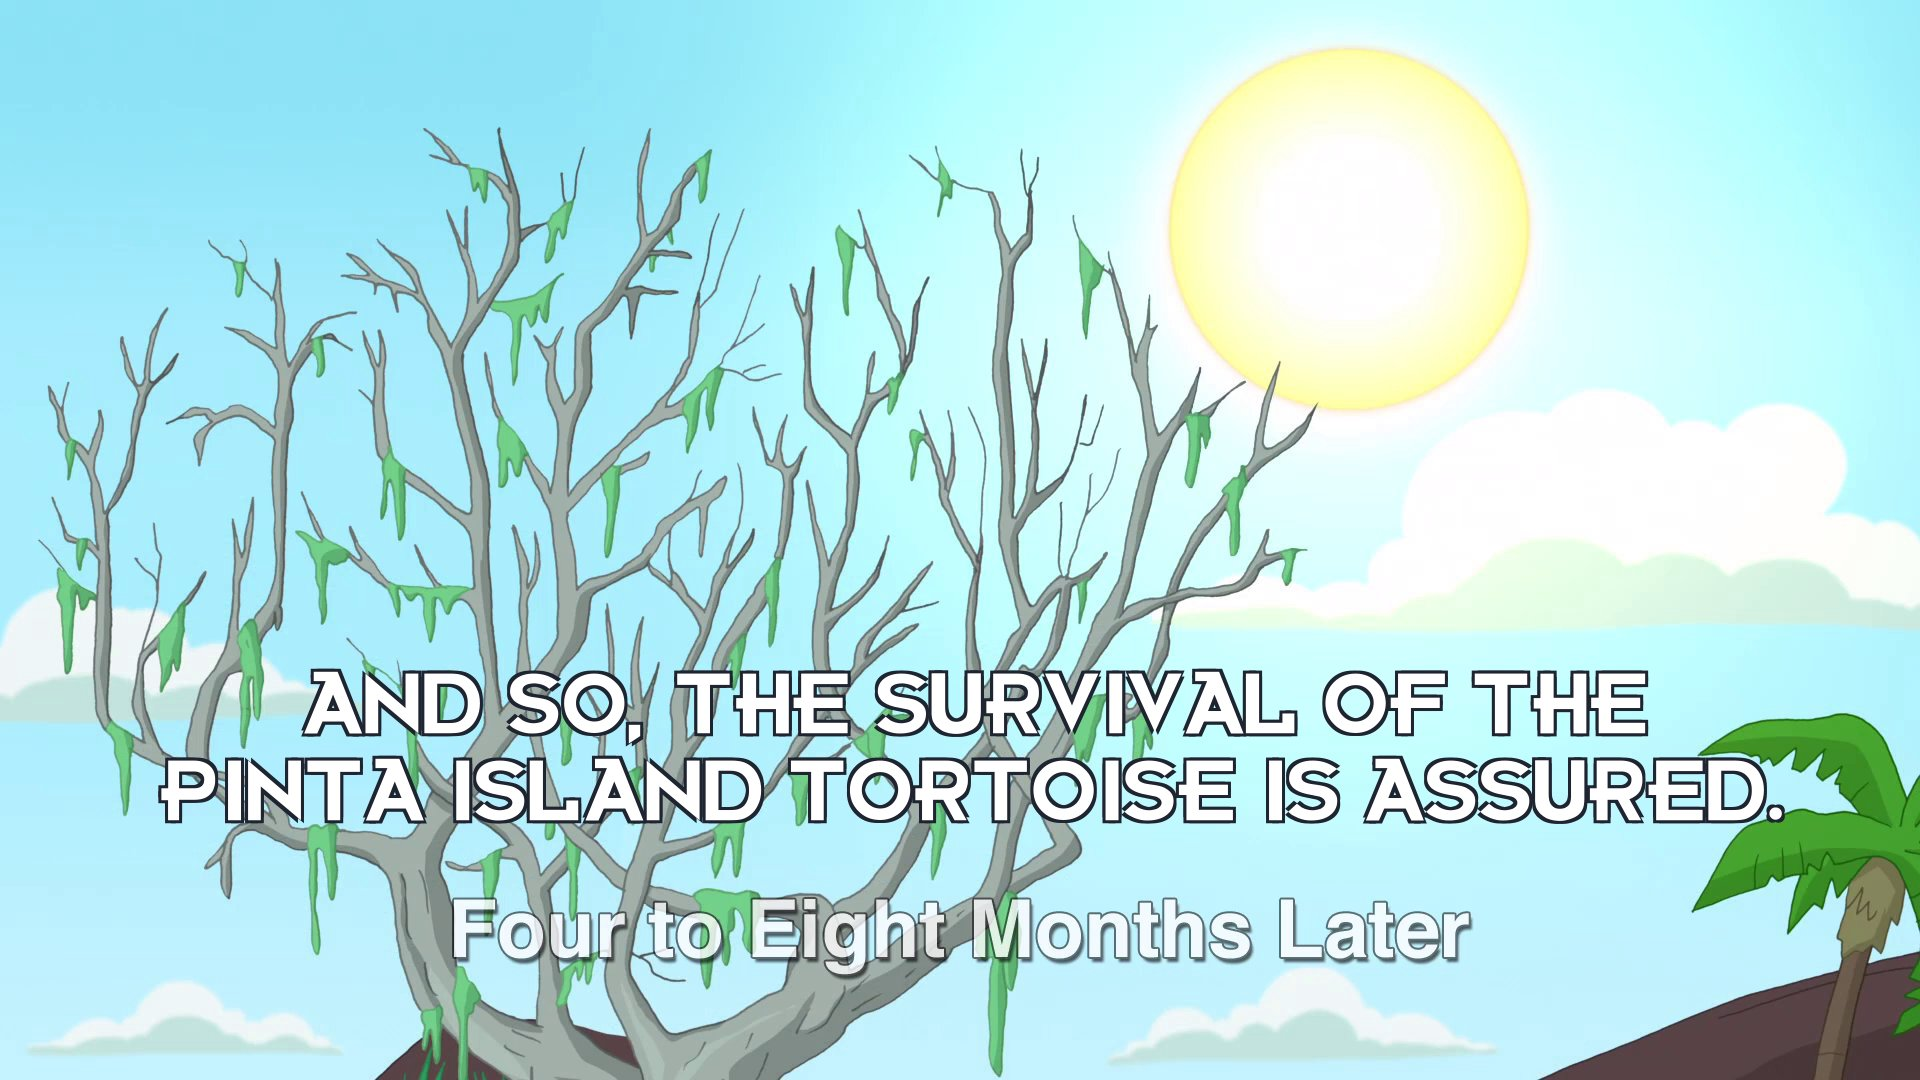 Narrator: And so, the survival of the Pinta Island tortoise is assured.